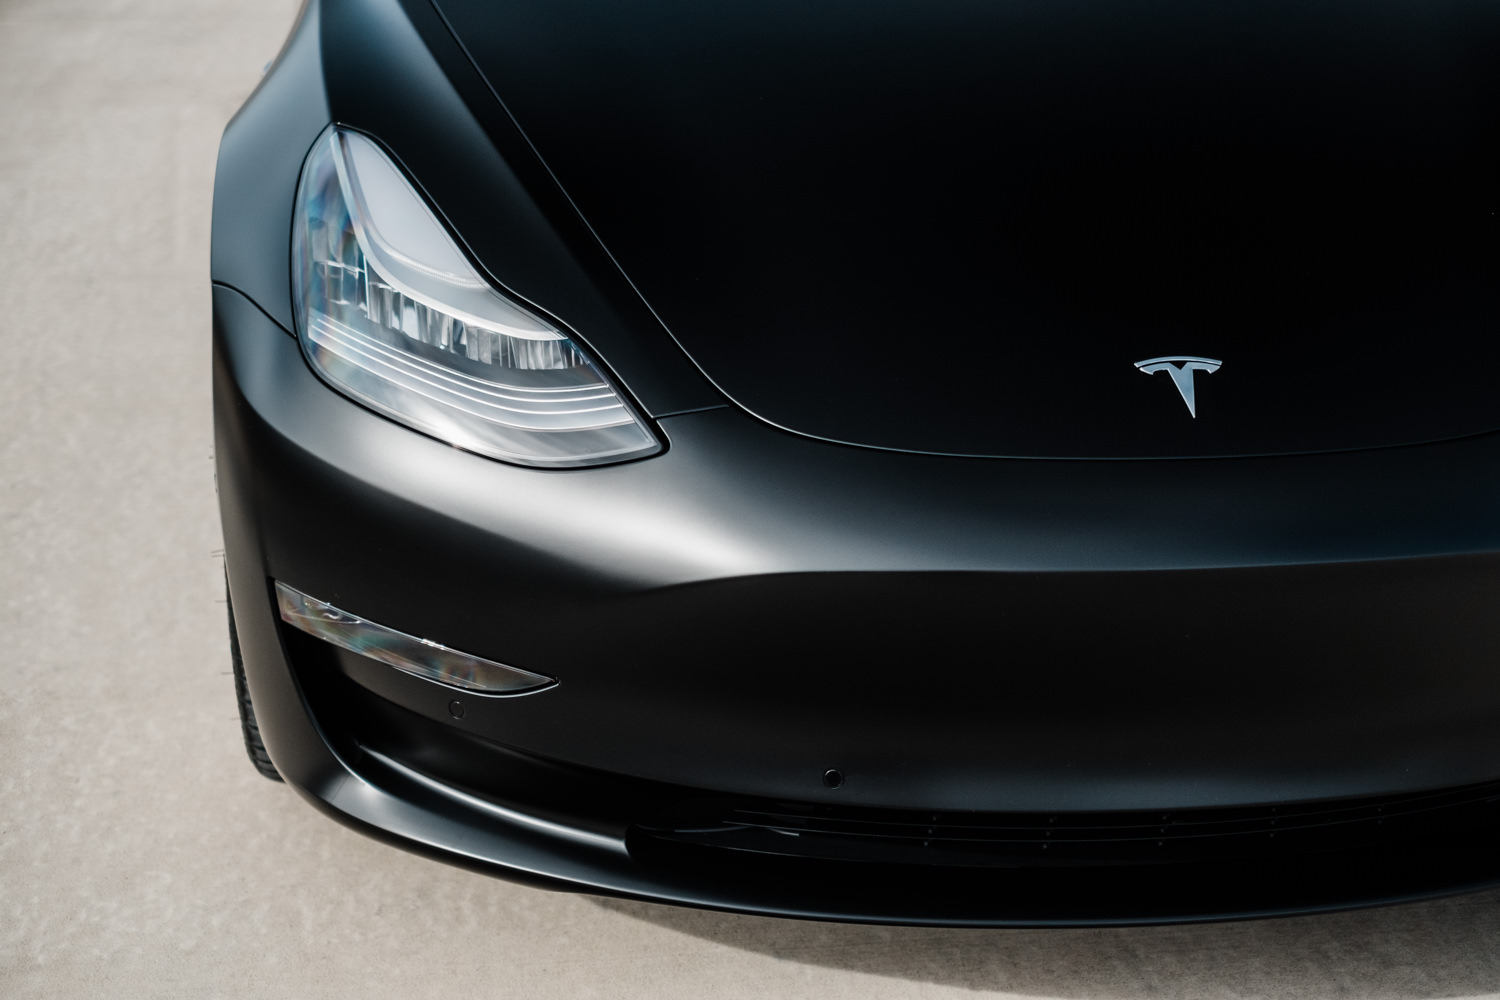 Full xpel stealth wrap - TESLA MODEL 3